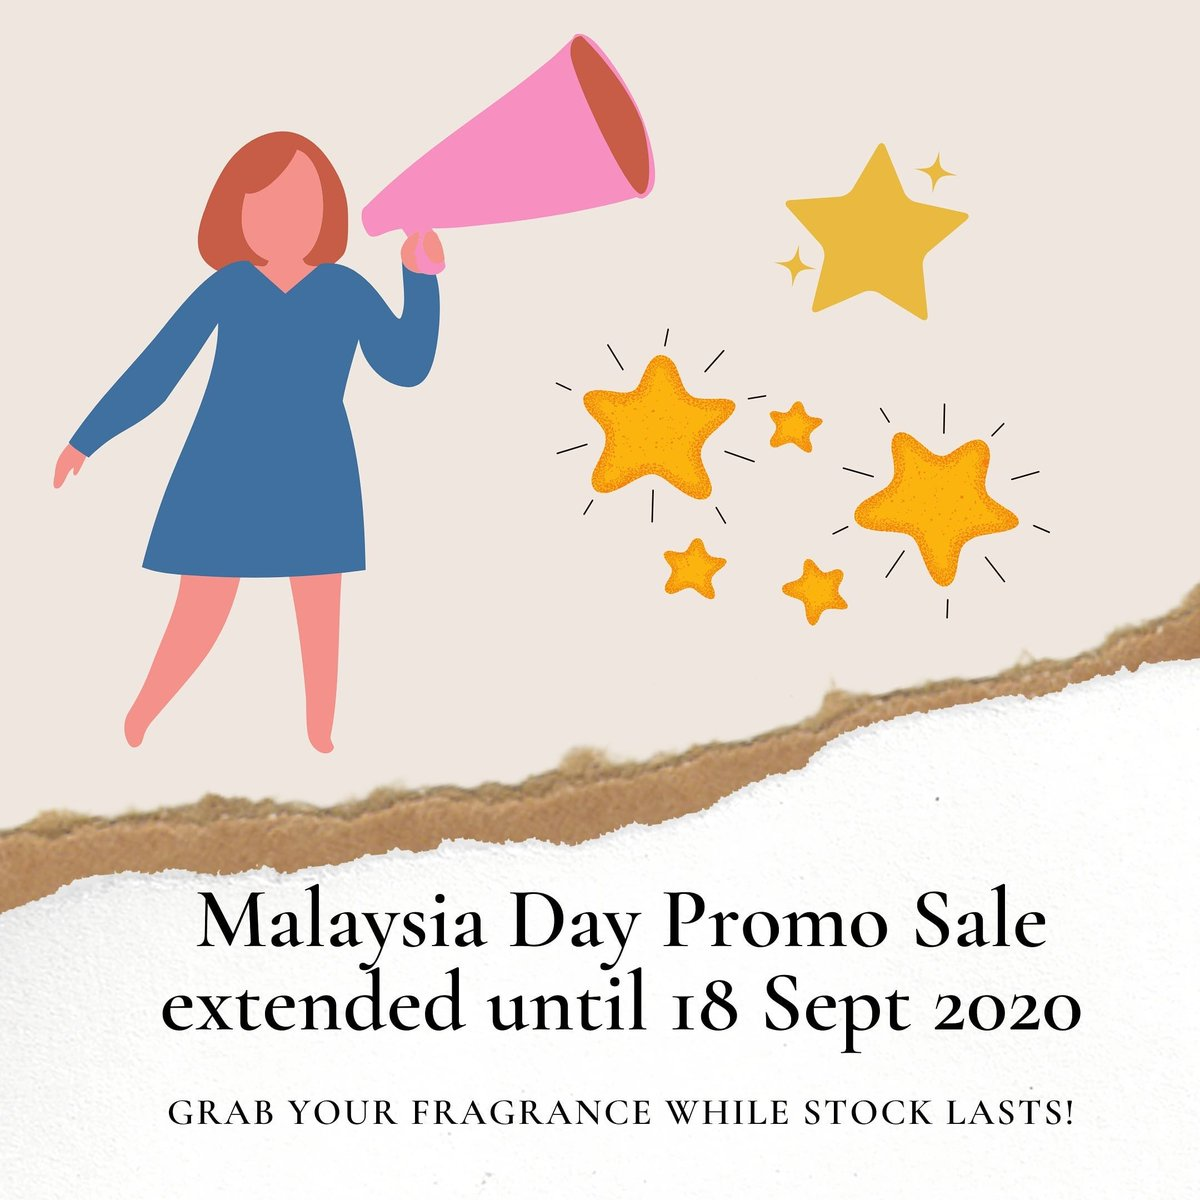 Hi guys! 🌟 🌟🌟  We are happy to announce that our Malaysia Day promo sale has been extended until 18 Sept 2020. 🇲🇾  Grab this chance to purchase your favourite fragrance before the promo ends! https://t.co/r6UCxolju6